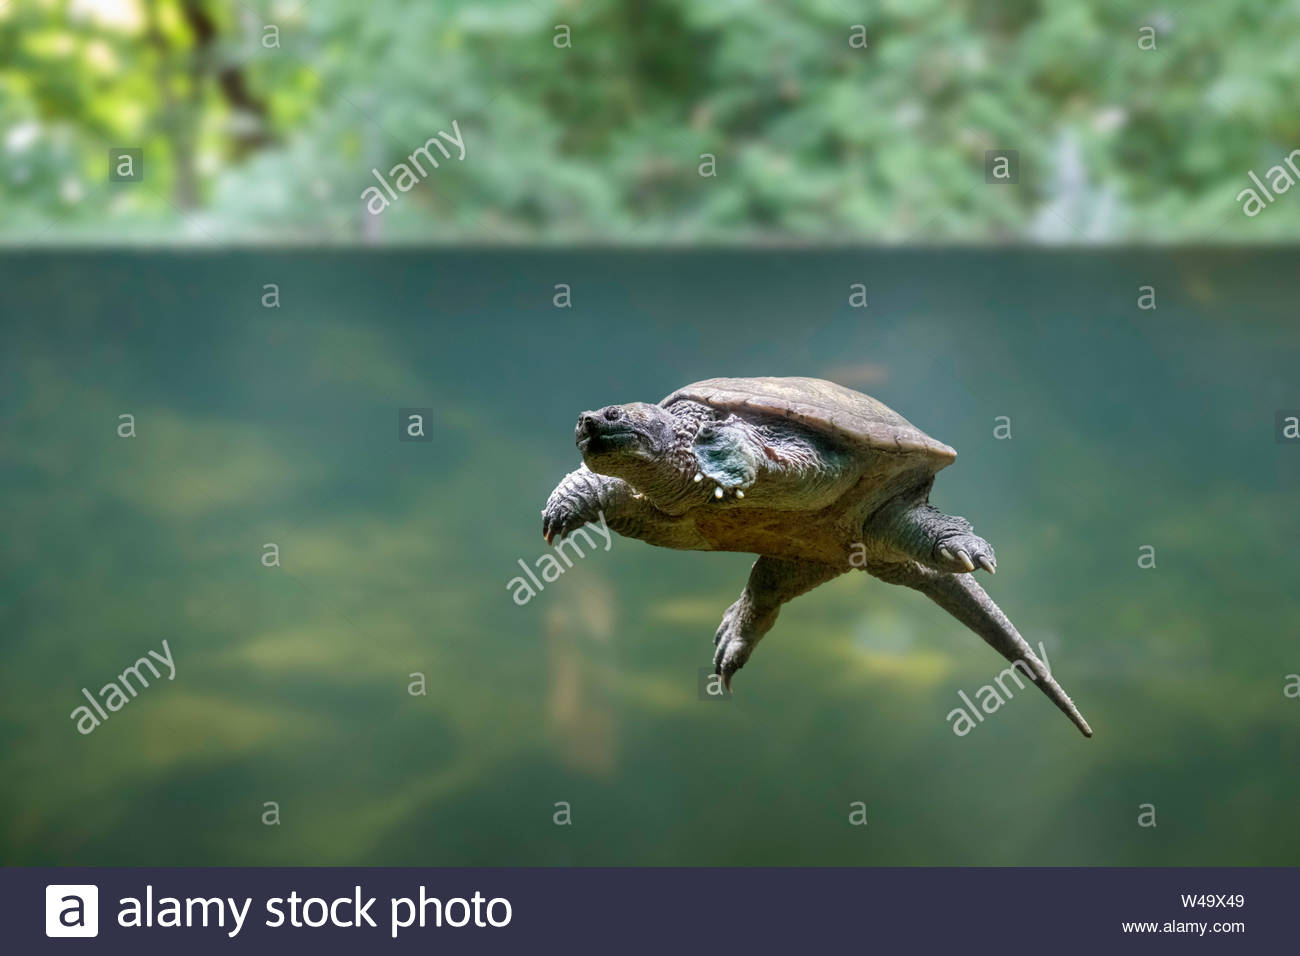 Common snapping turtle Chelydre serpentina underwater at the Toronto Zoo Ontario Canada. Stock Photo